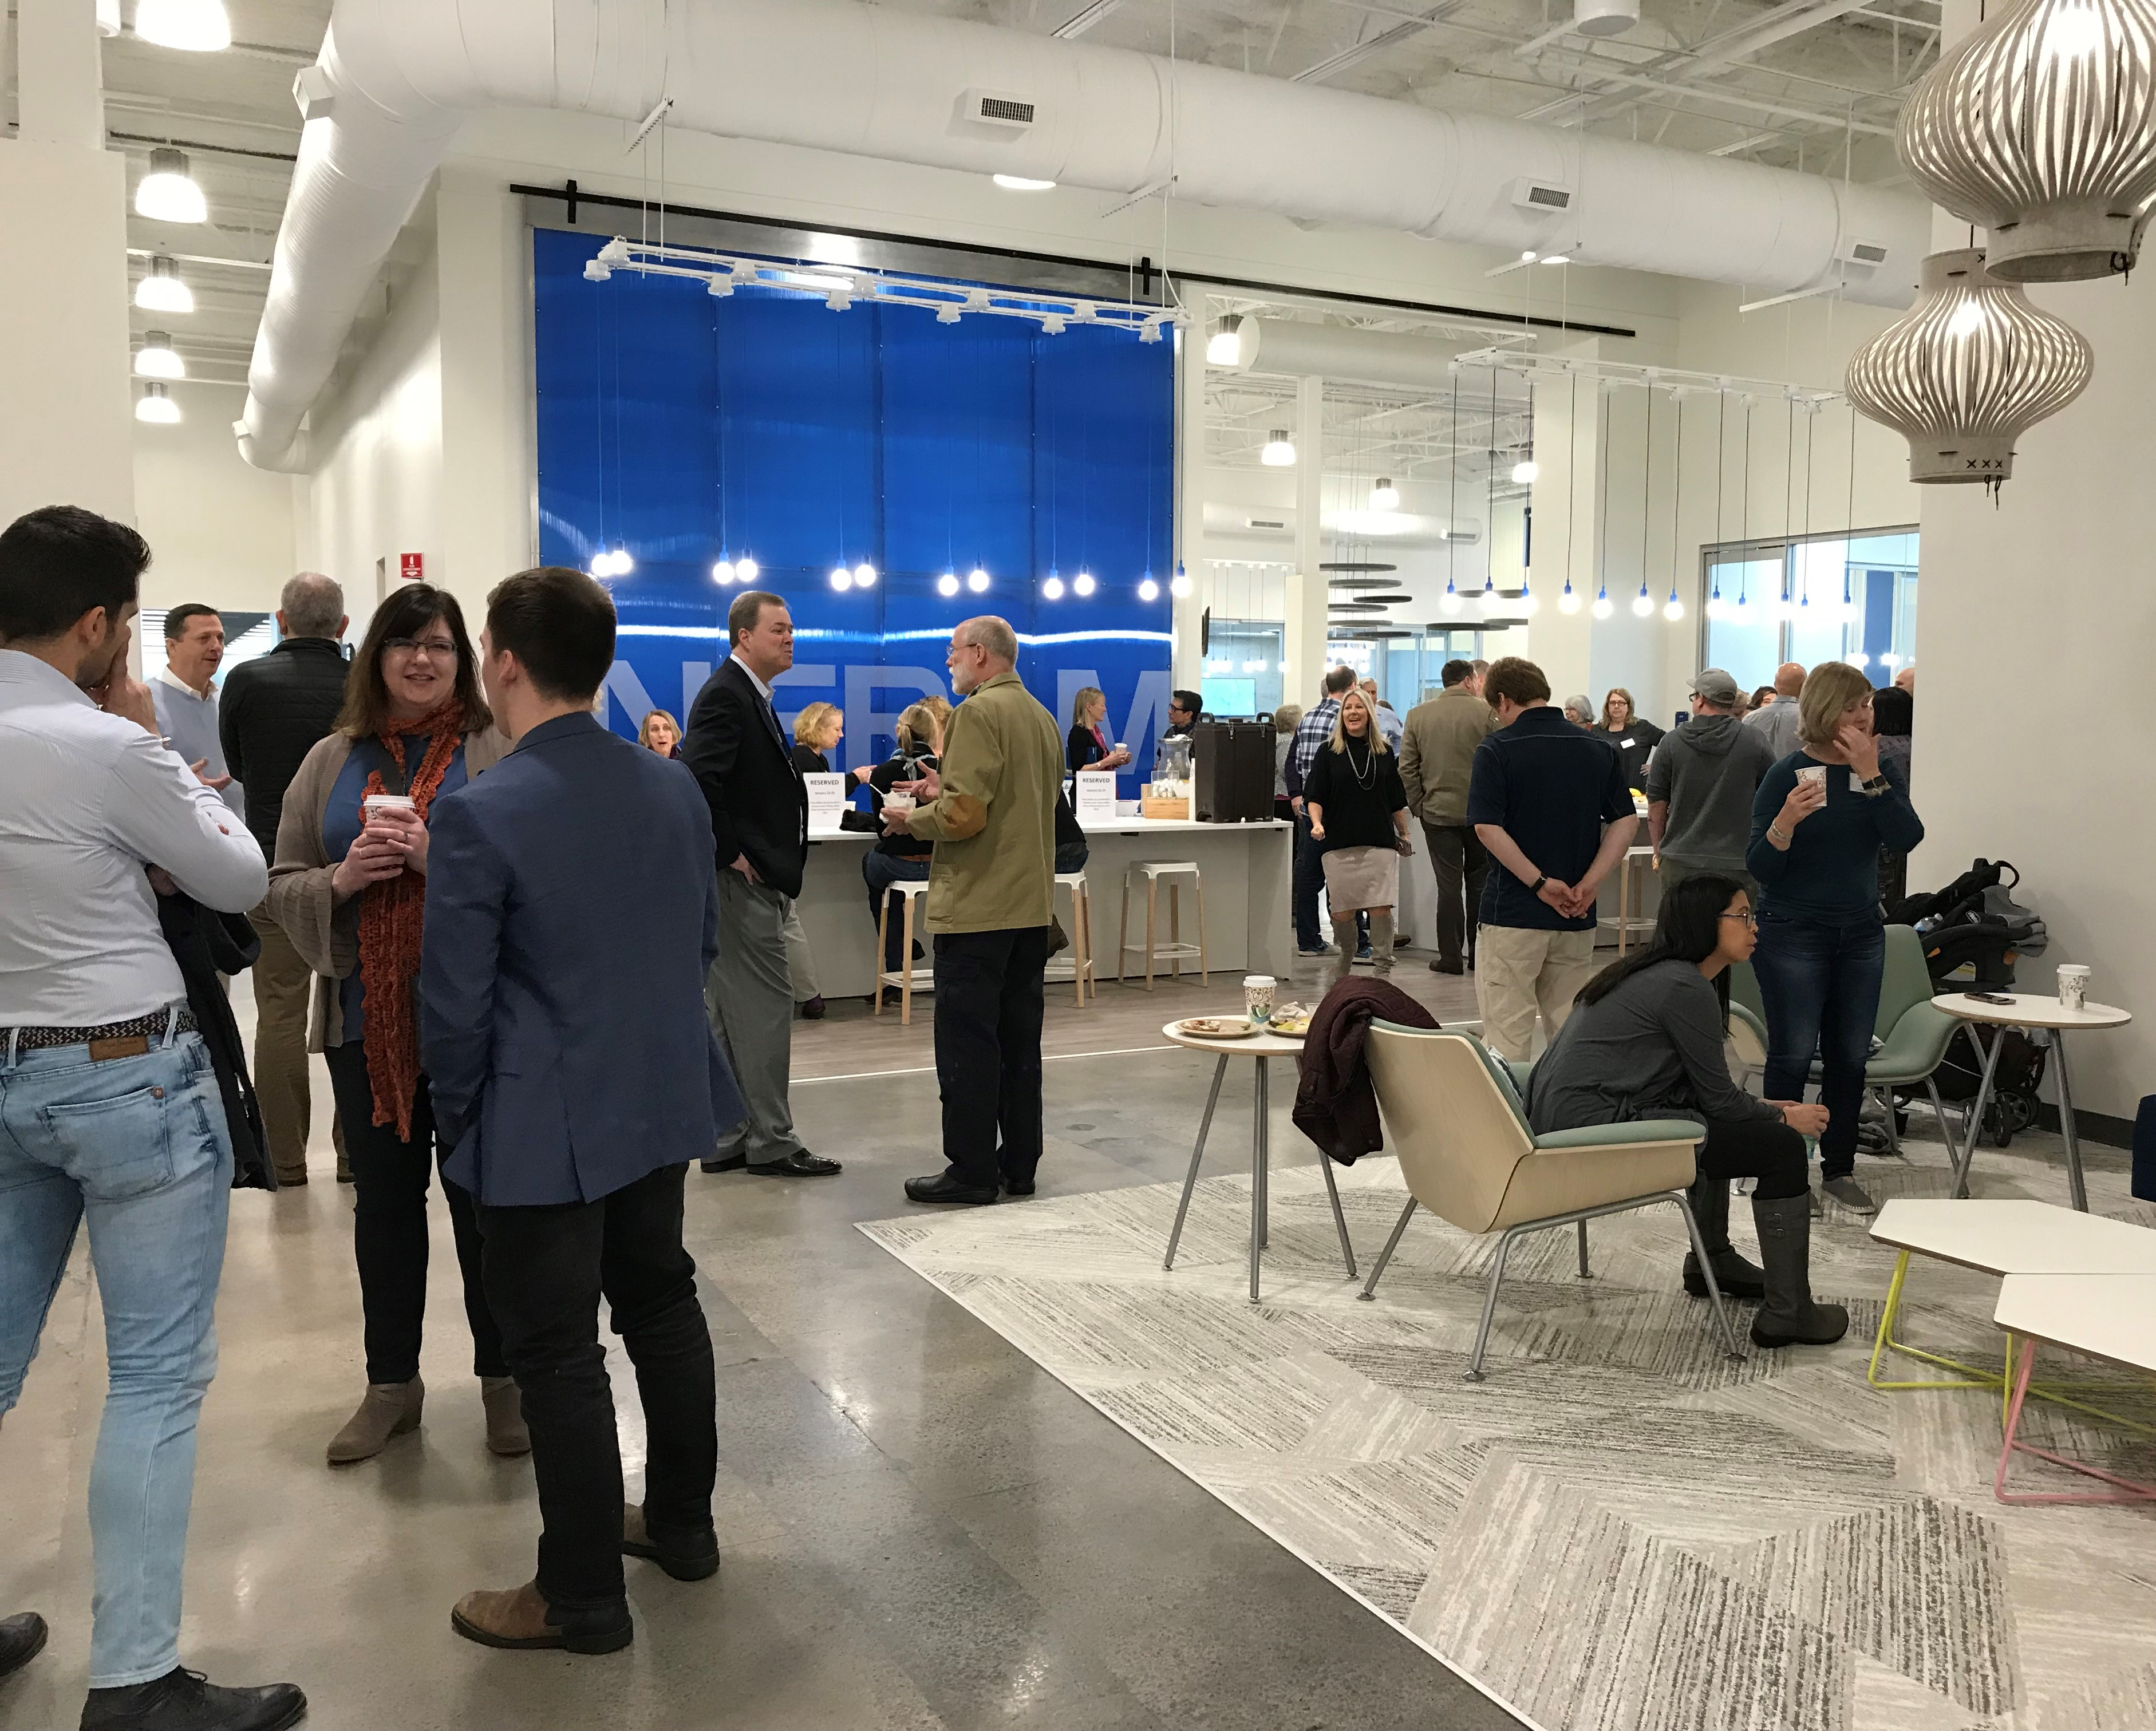 Wi13 lead sponsor Ingram invited booksellers to tour its Nashville area facility.